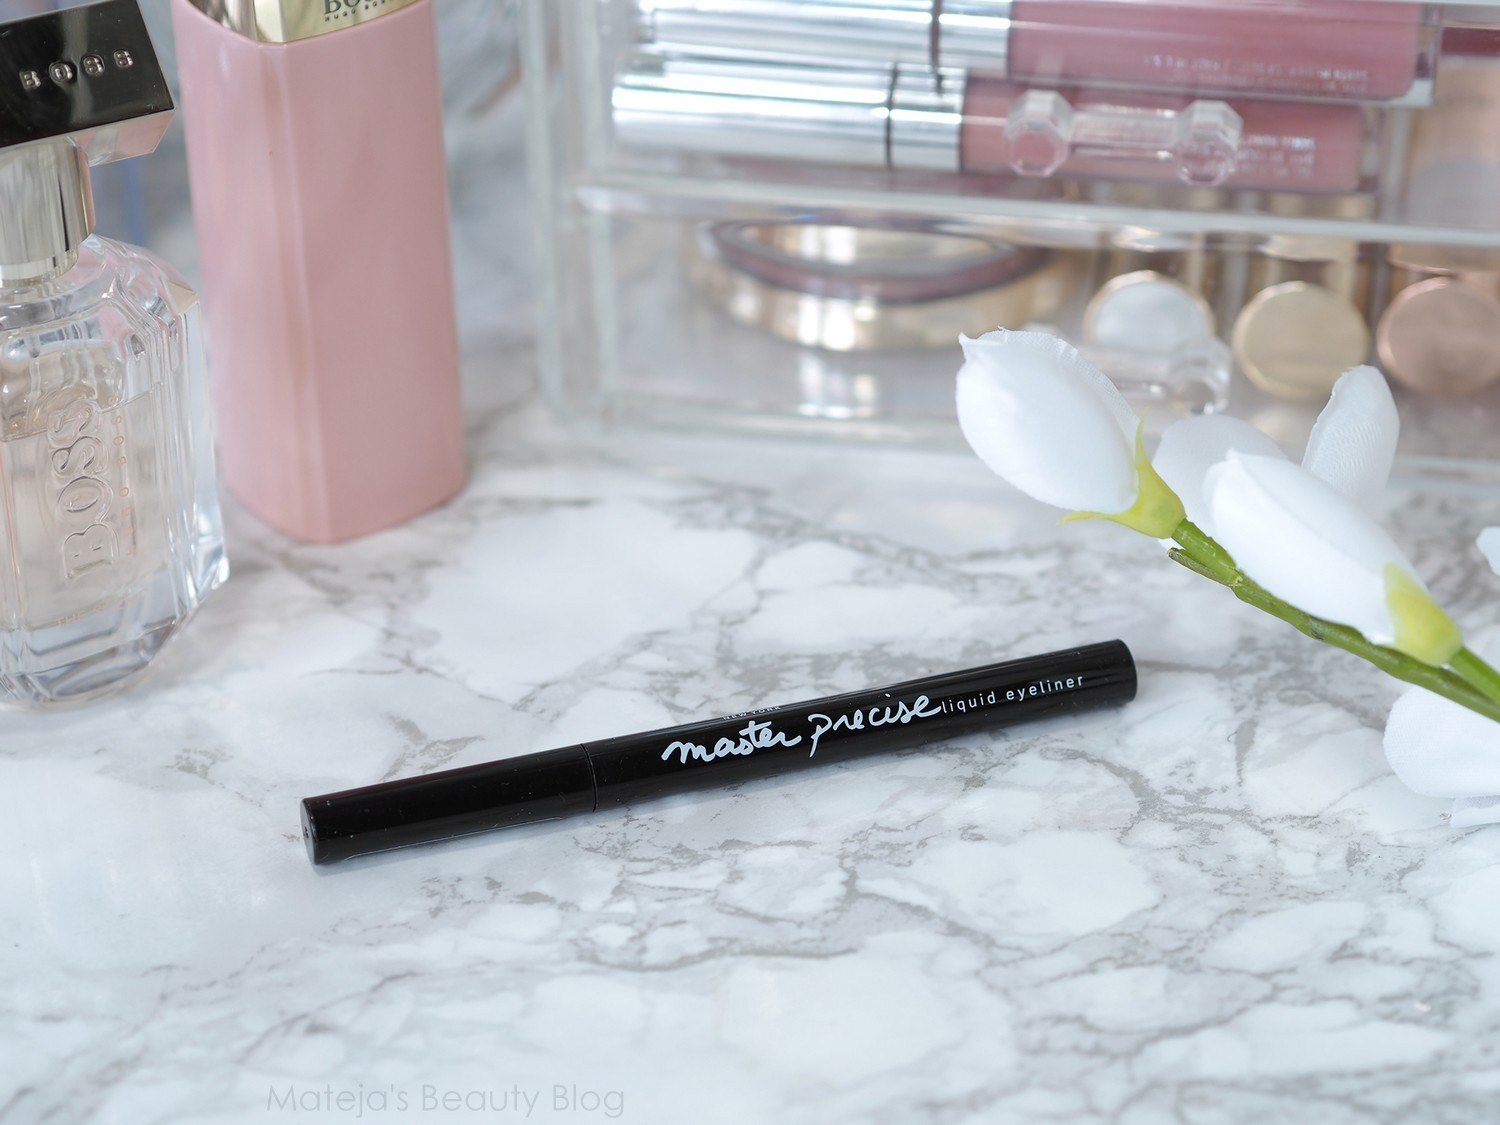 Maybelline Master Precise Eyeliner Matejas Beauty Blog Bloglovin Krezi Kamis 26 Bourjois Rouge Edition Velvet Lipstick I Got It On Salma For A Reasonable 521 And Also Finally Found In Our Drugstores Think 7 Or 8 Considering Its Pretty Much Dupe